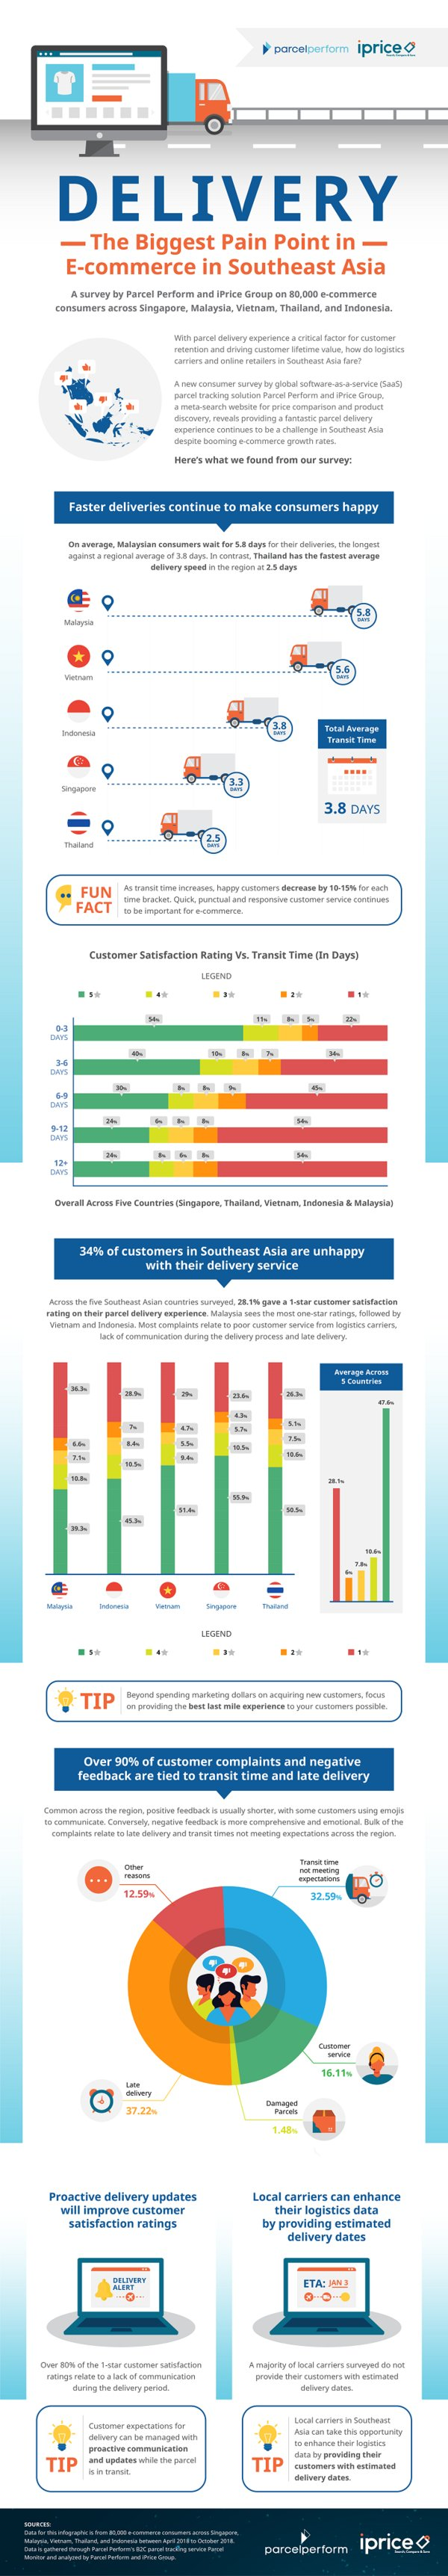 New Survey: Delivery Experience in Southeast Asia